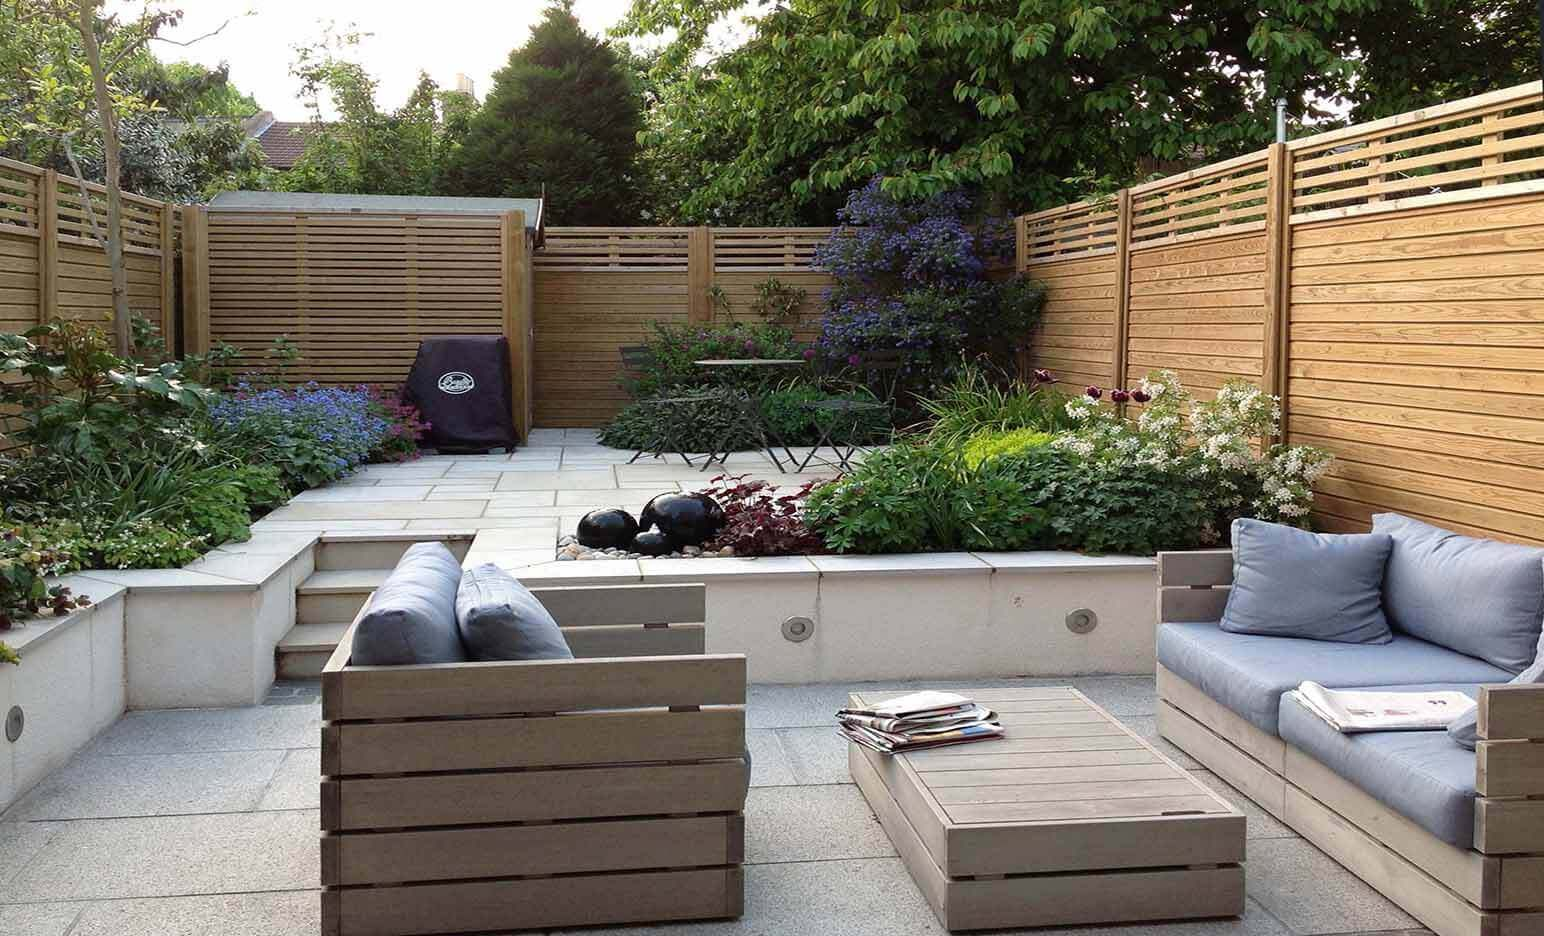 Solid privacy fence panels with slatted top